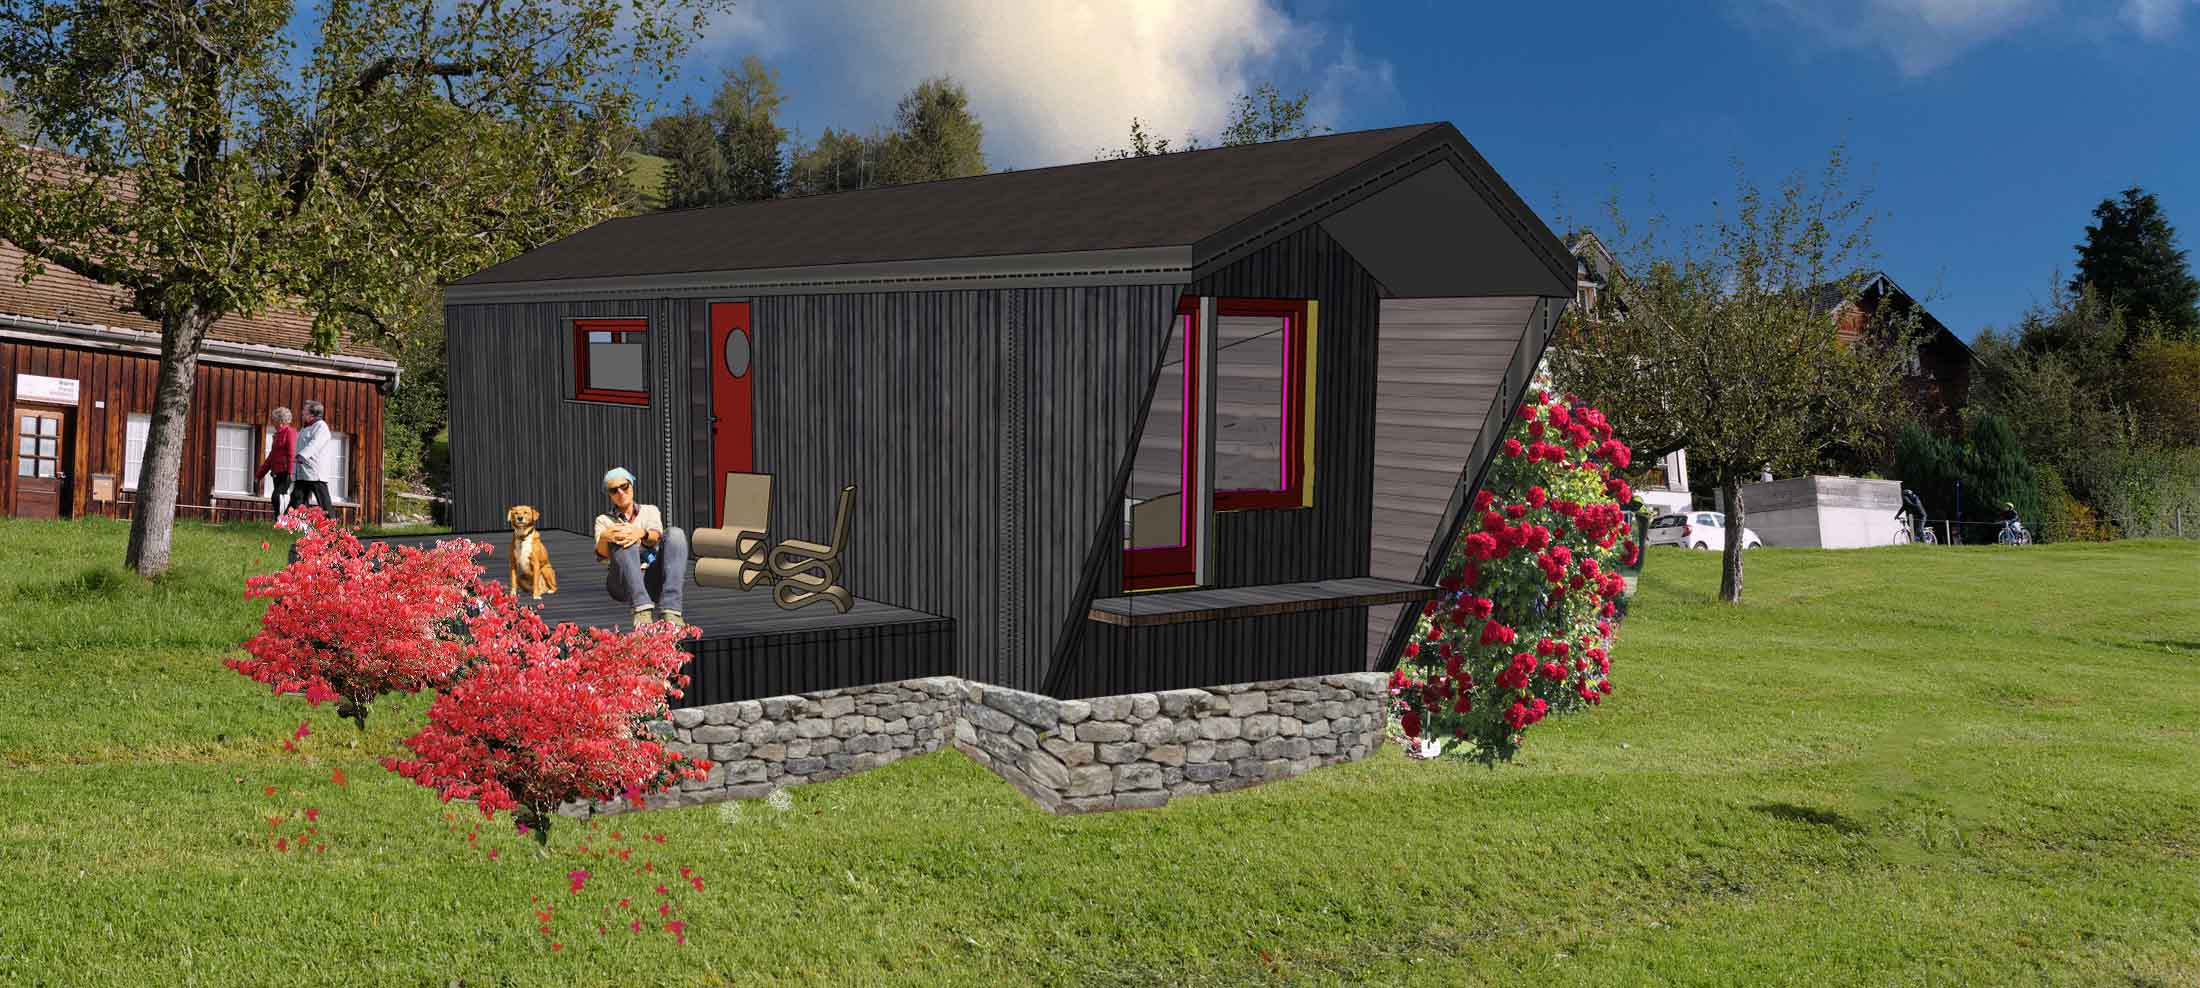 das-tiny-house-ch-mythos-ökologisches-tiny-house